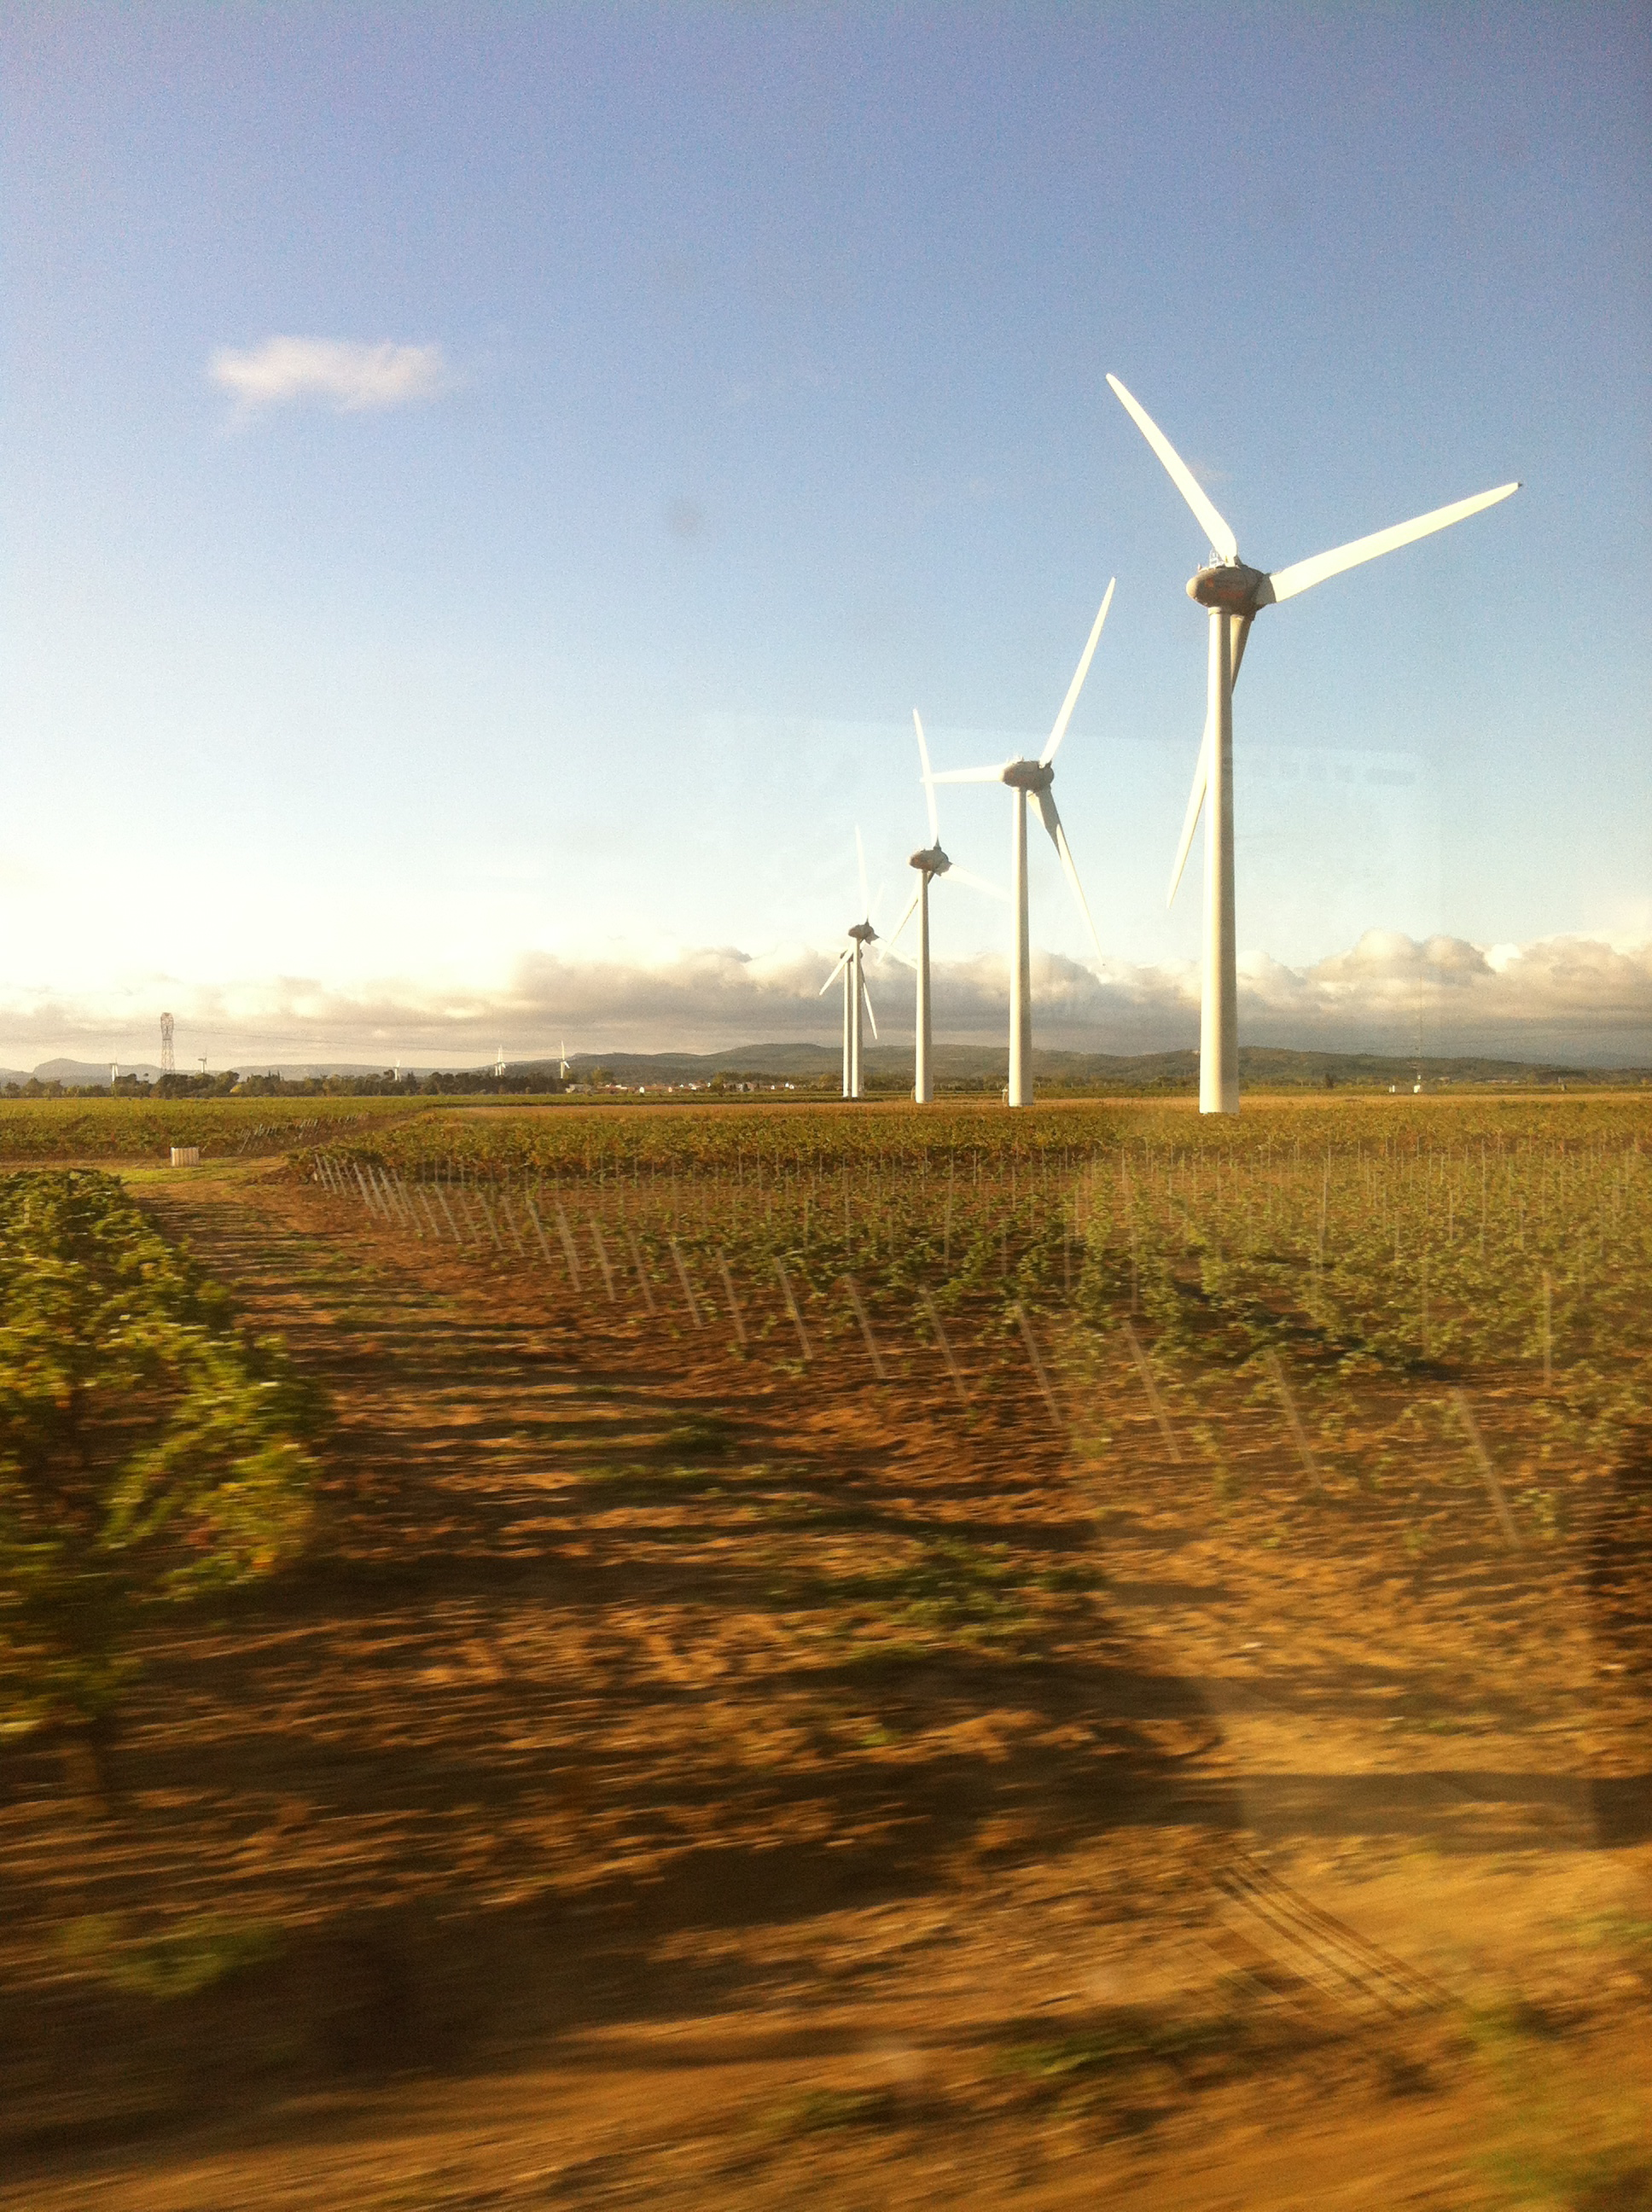 Wind turbines in a vineyard in southern France